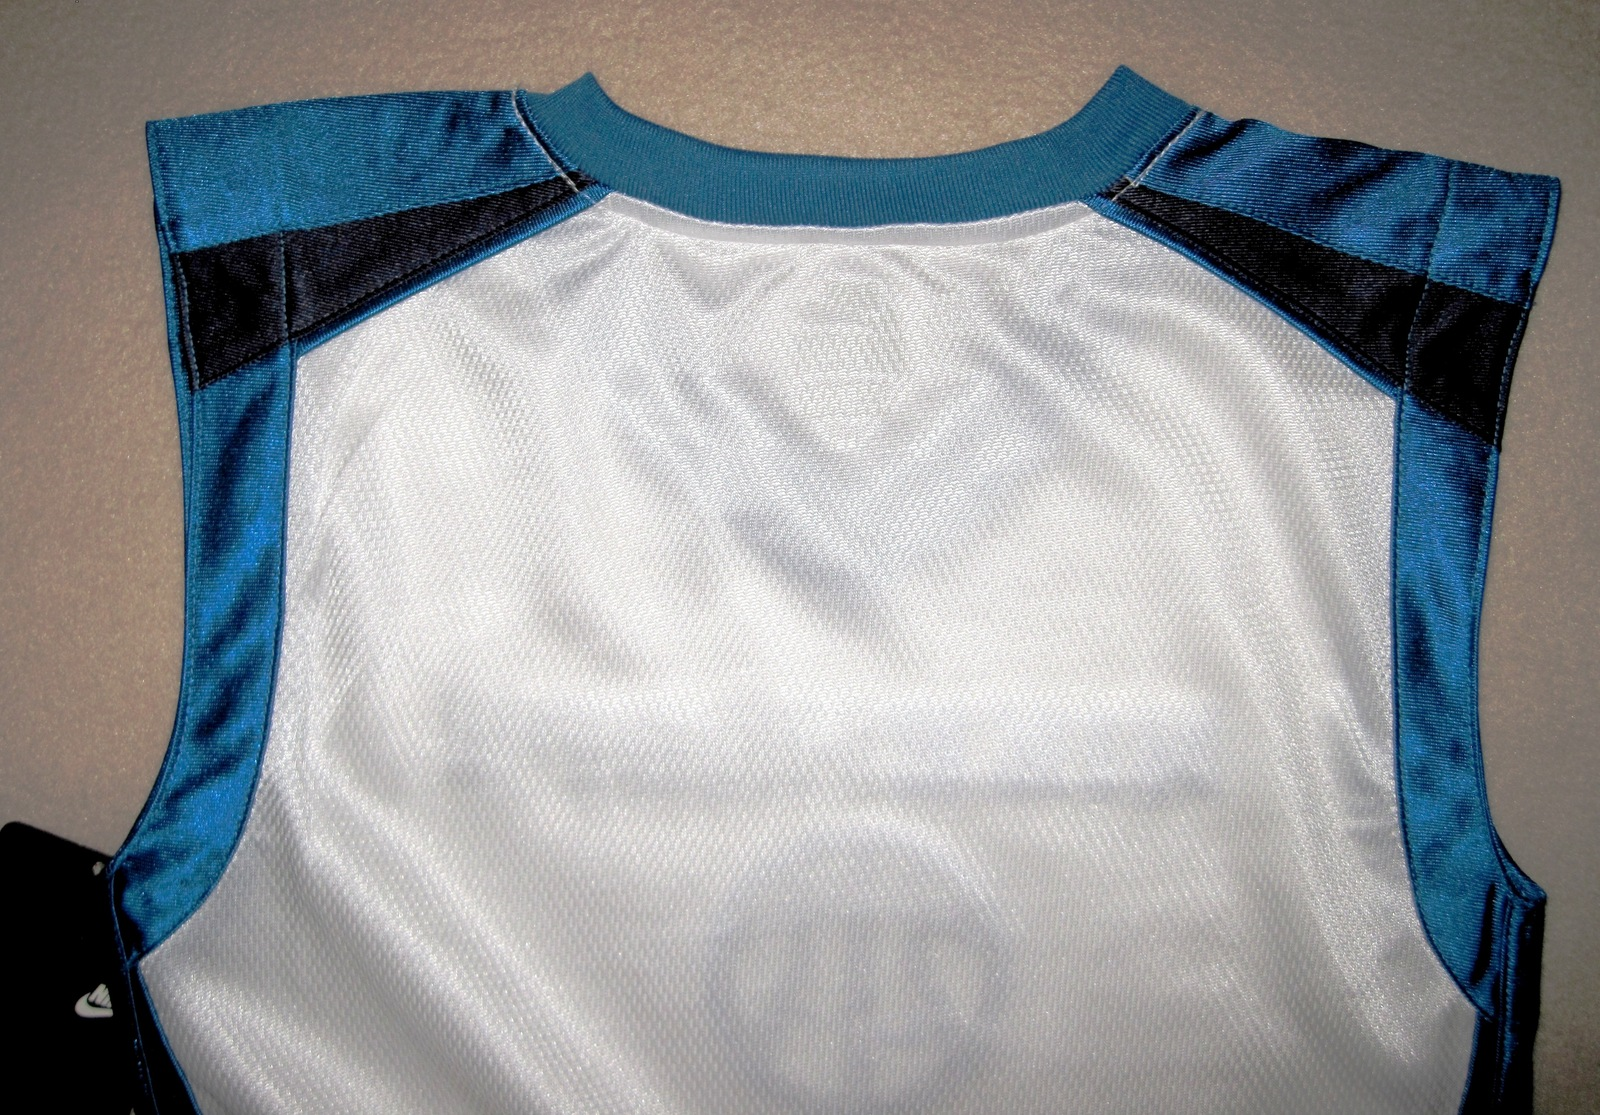 BOYS 6 - Nike Hoops - White-Electric Blue-Black BASKETBALL SPORTS JERSEY image 7